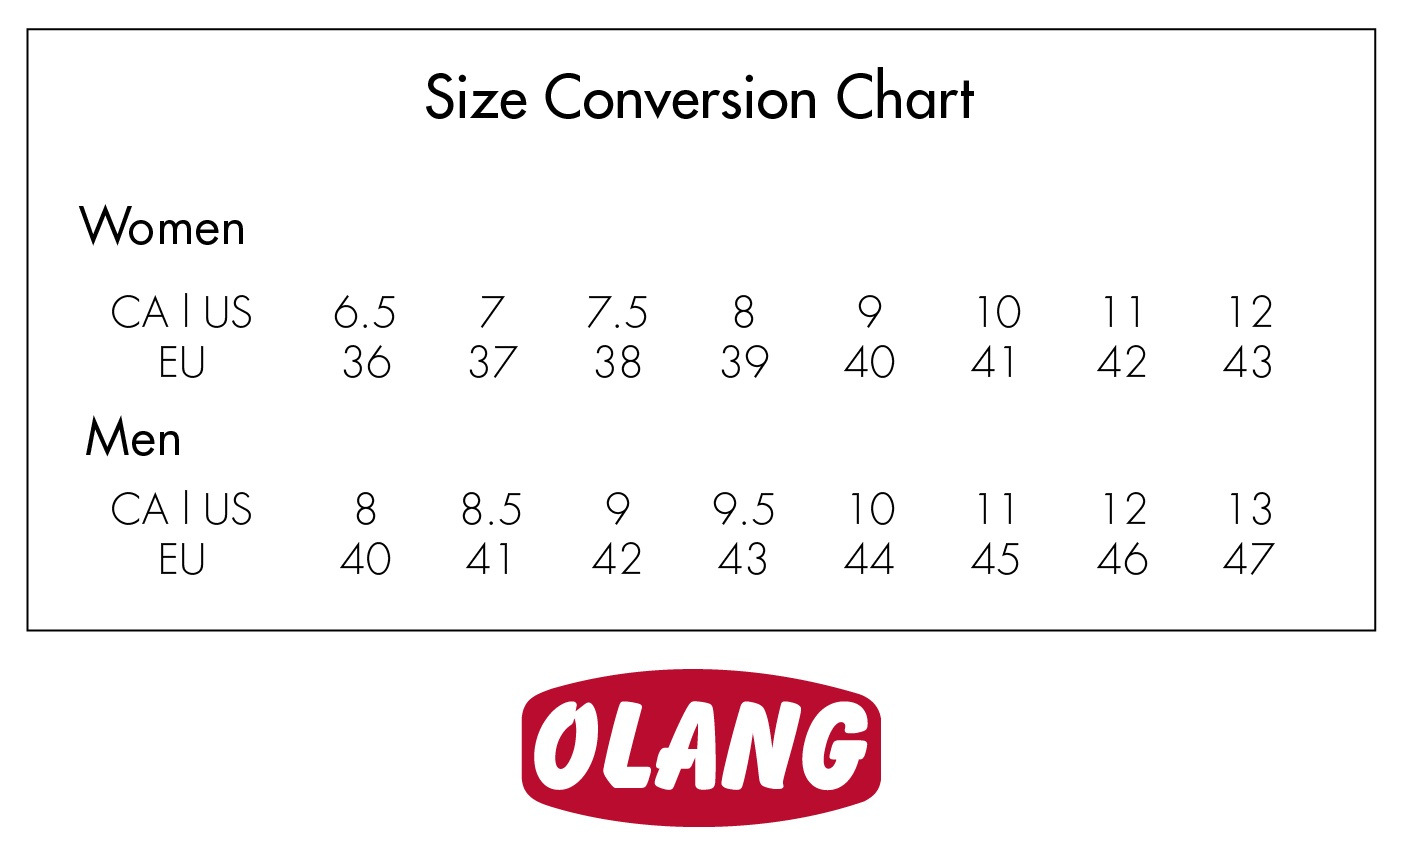 Olang Size Conversion Chart